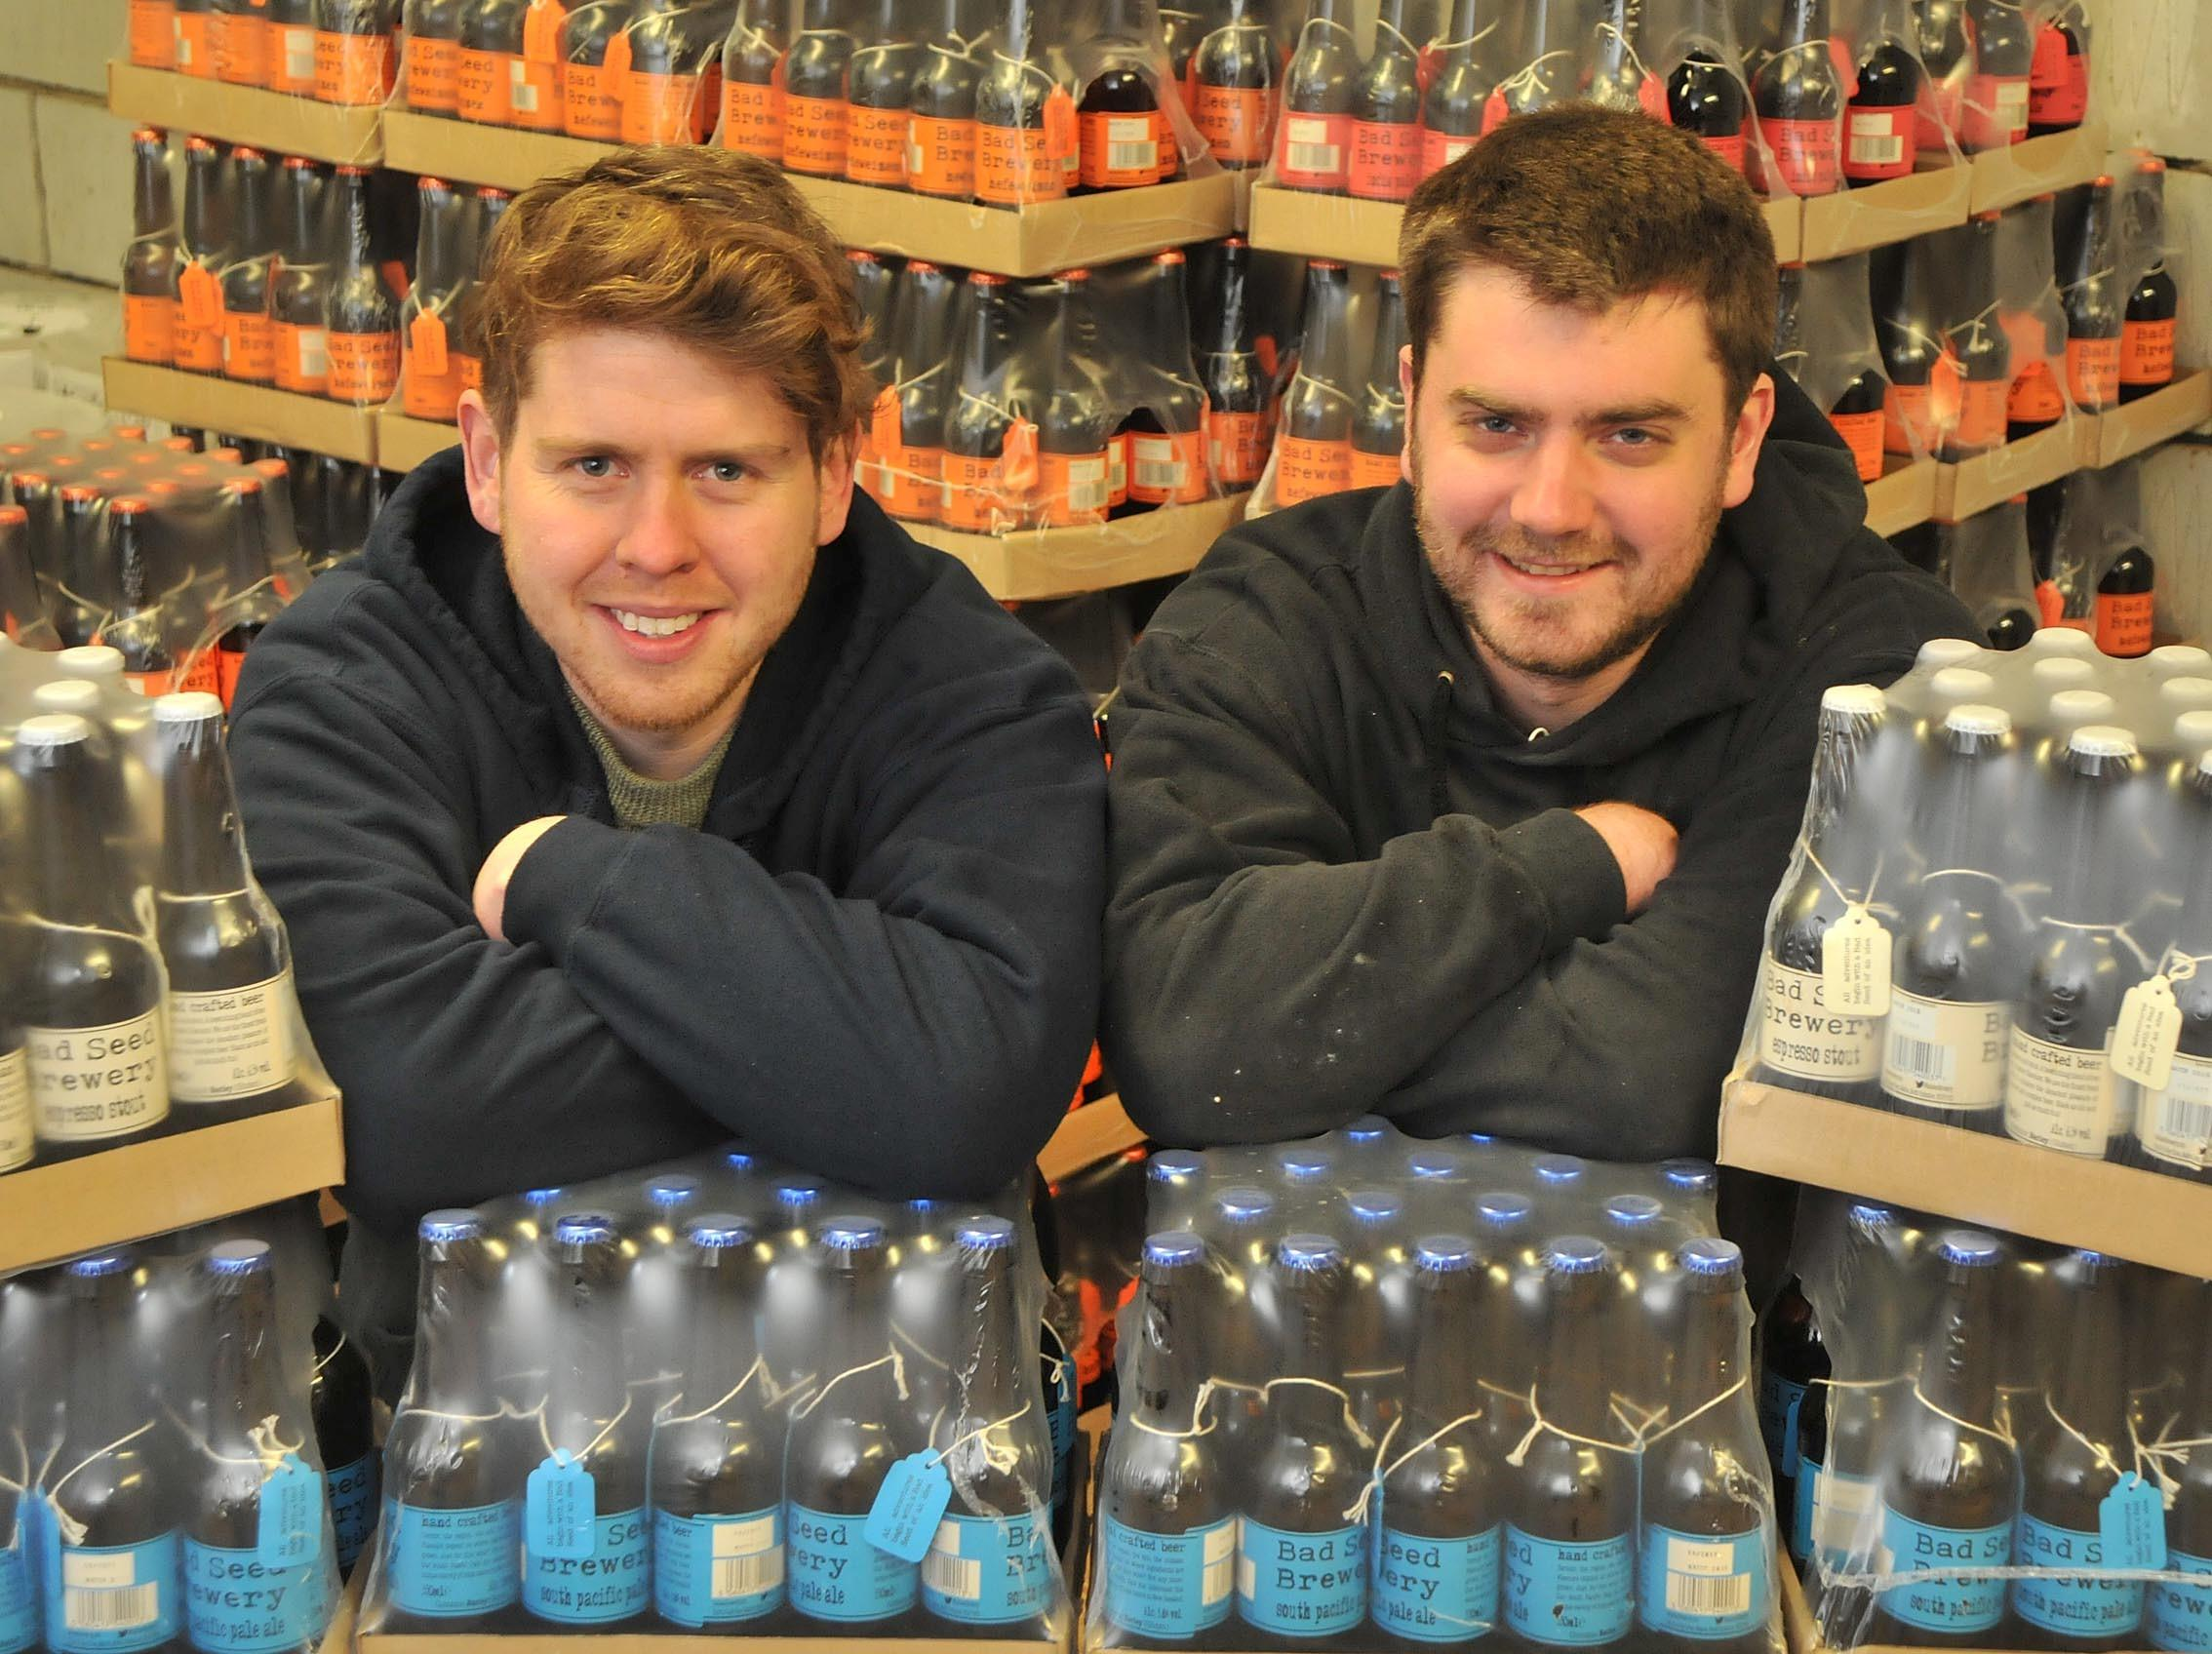 Chris Waplington, left, and James Broad, of Bad Seed Brewery, which will have its beer sold in Tate Modern and Harvey Nichols